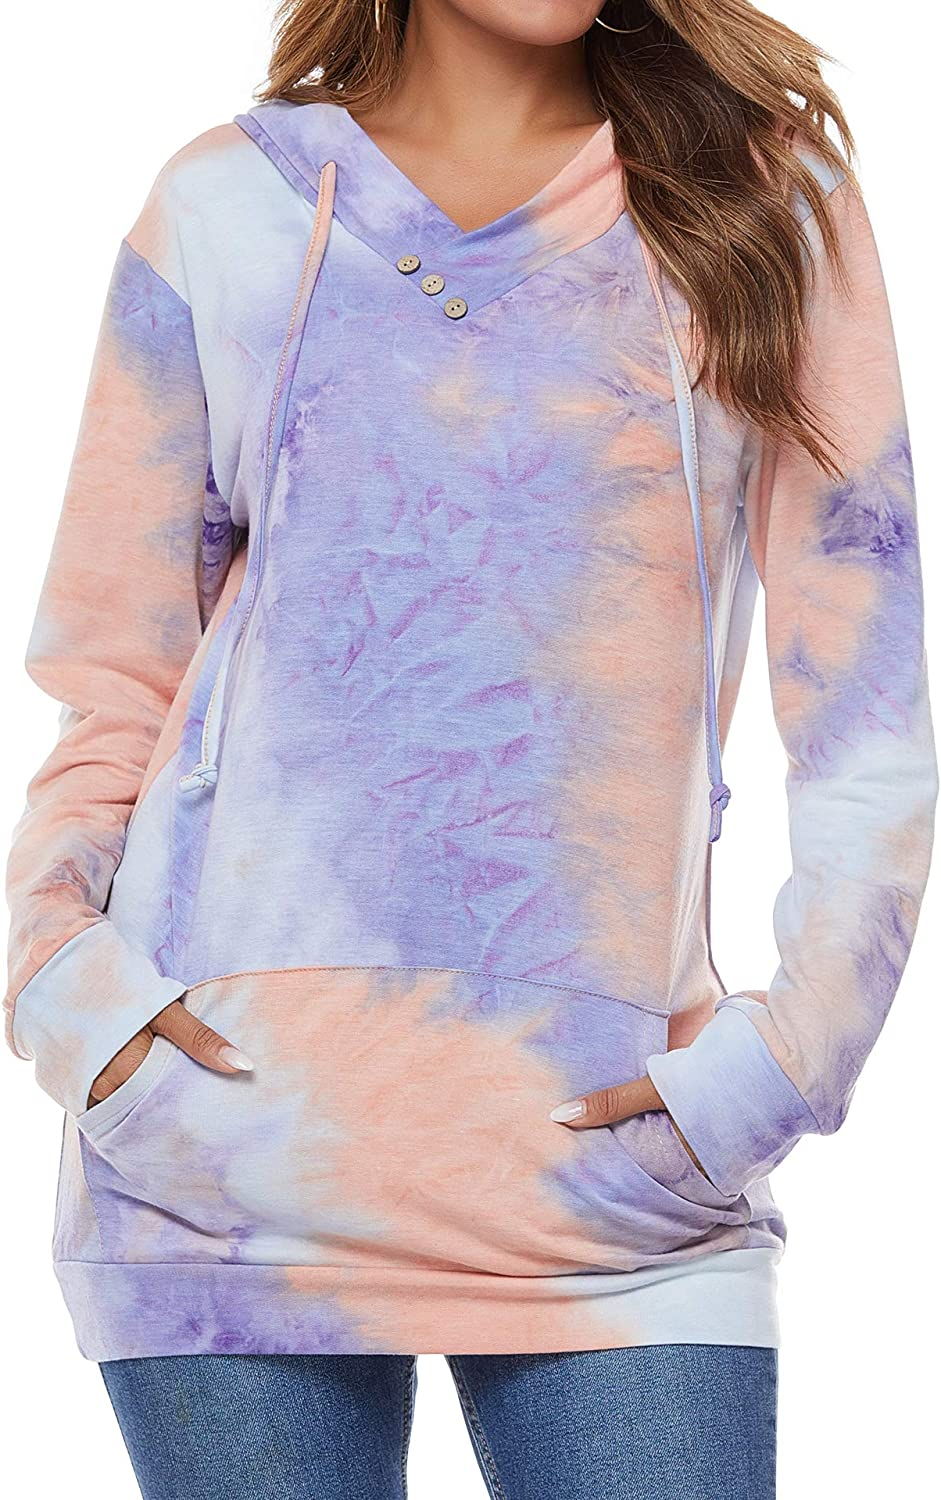 VILOVE Womens Hoodies Pullover Drawstring Casual Be super welcome Hoodie Top San Jose Mall Long